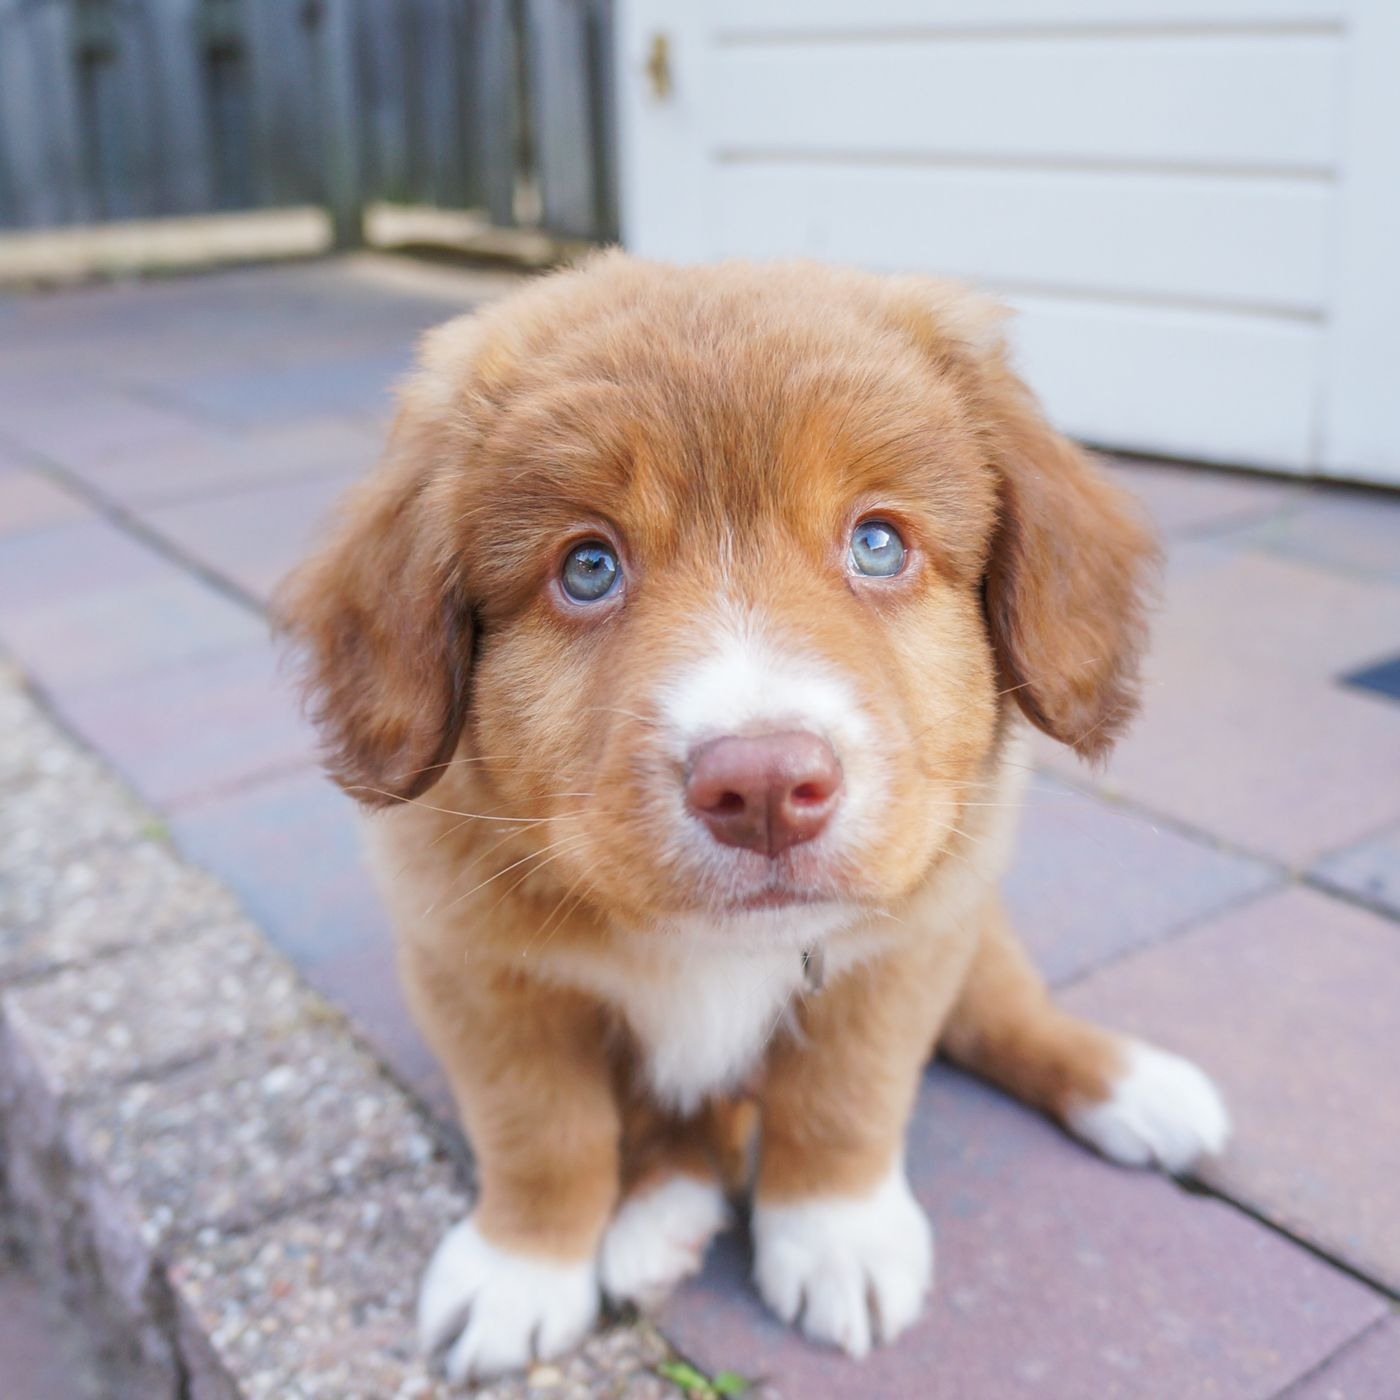 Cutest Toller Puppy Ever Styx And His Magical Blue Puppy Eyes